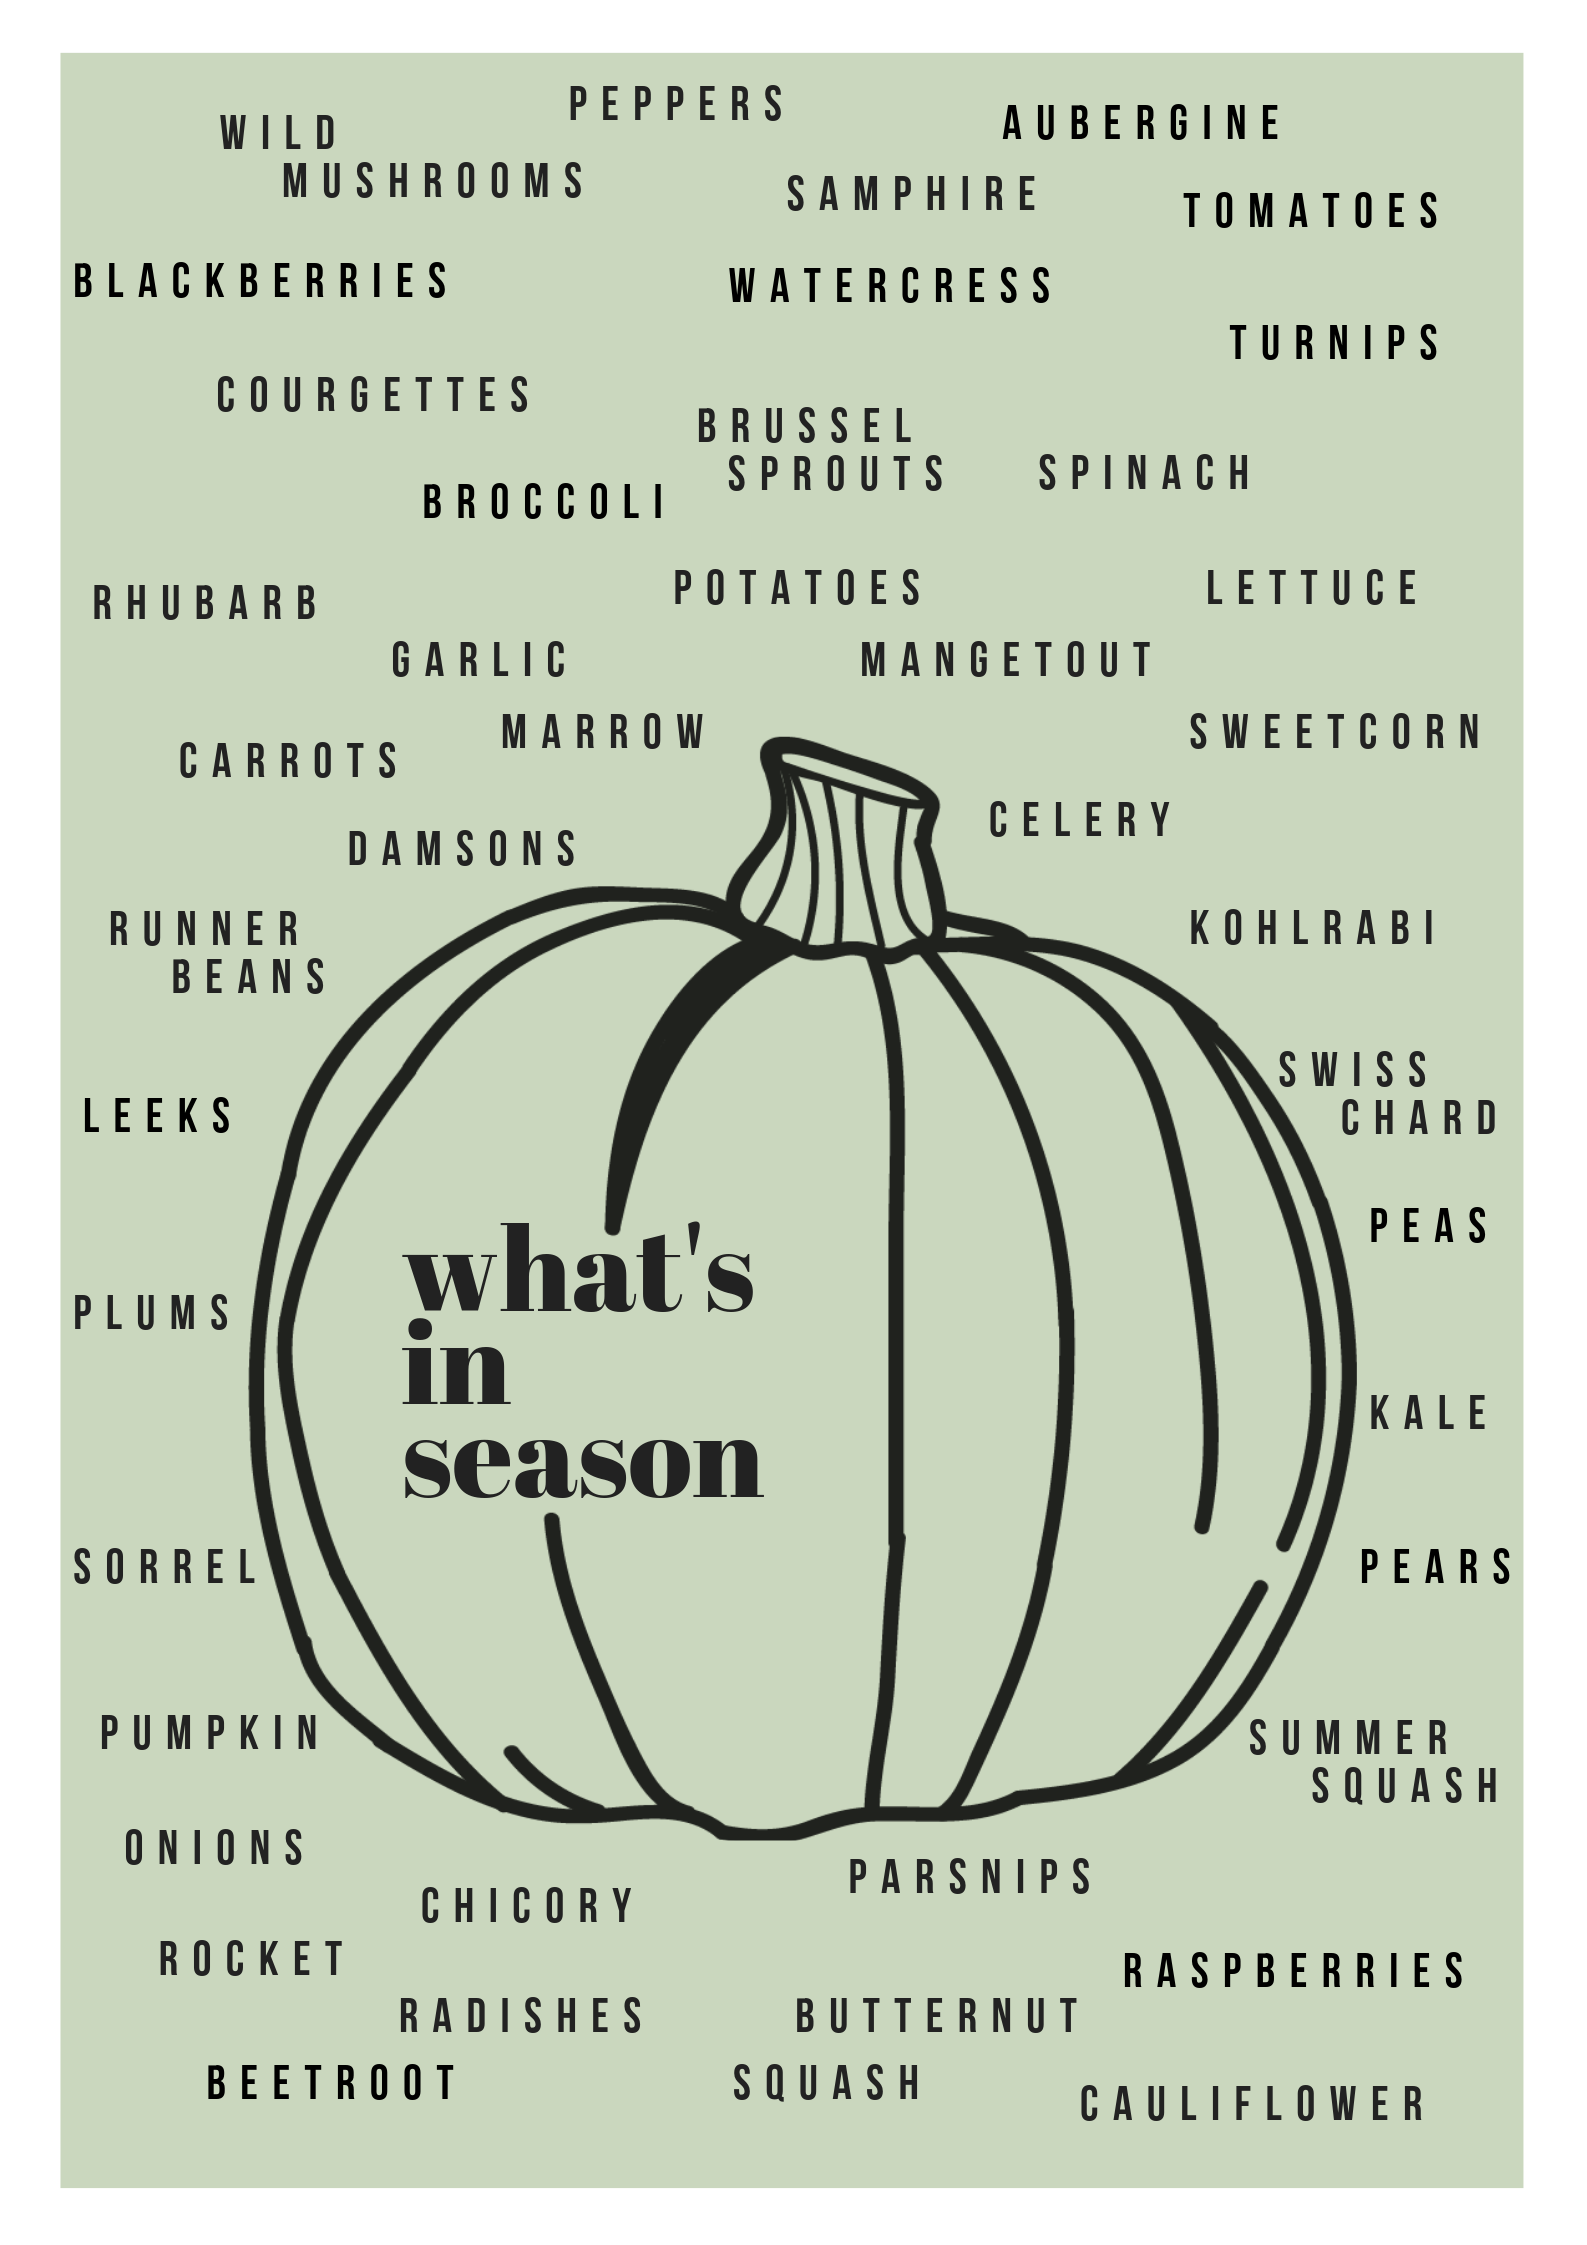 A poster conveying what fruits and vegetables are currently in season this September/October with an illustrated pumpkin as the background for the list of produce. Designed by Gwynnie Duesbery, 2019.